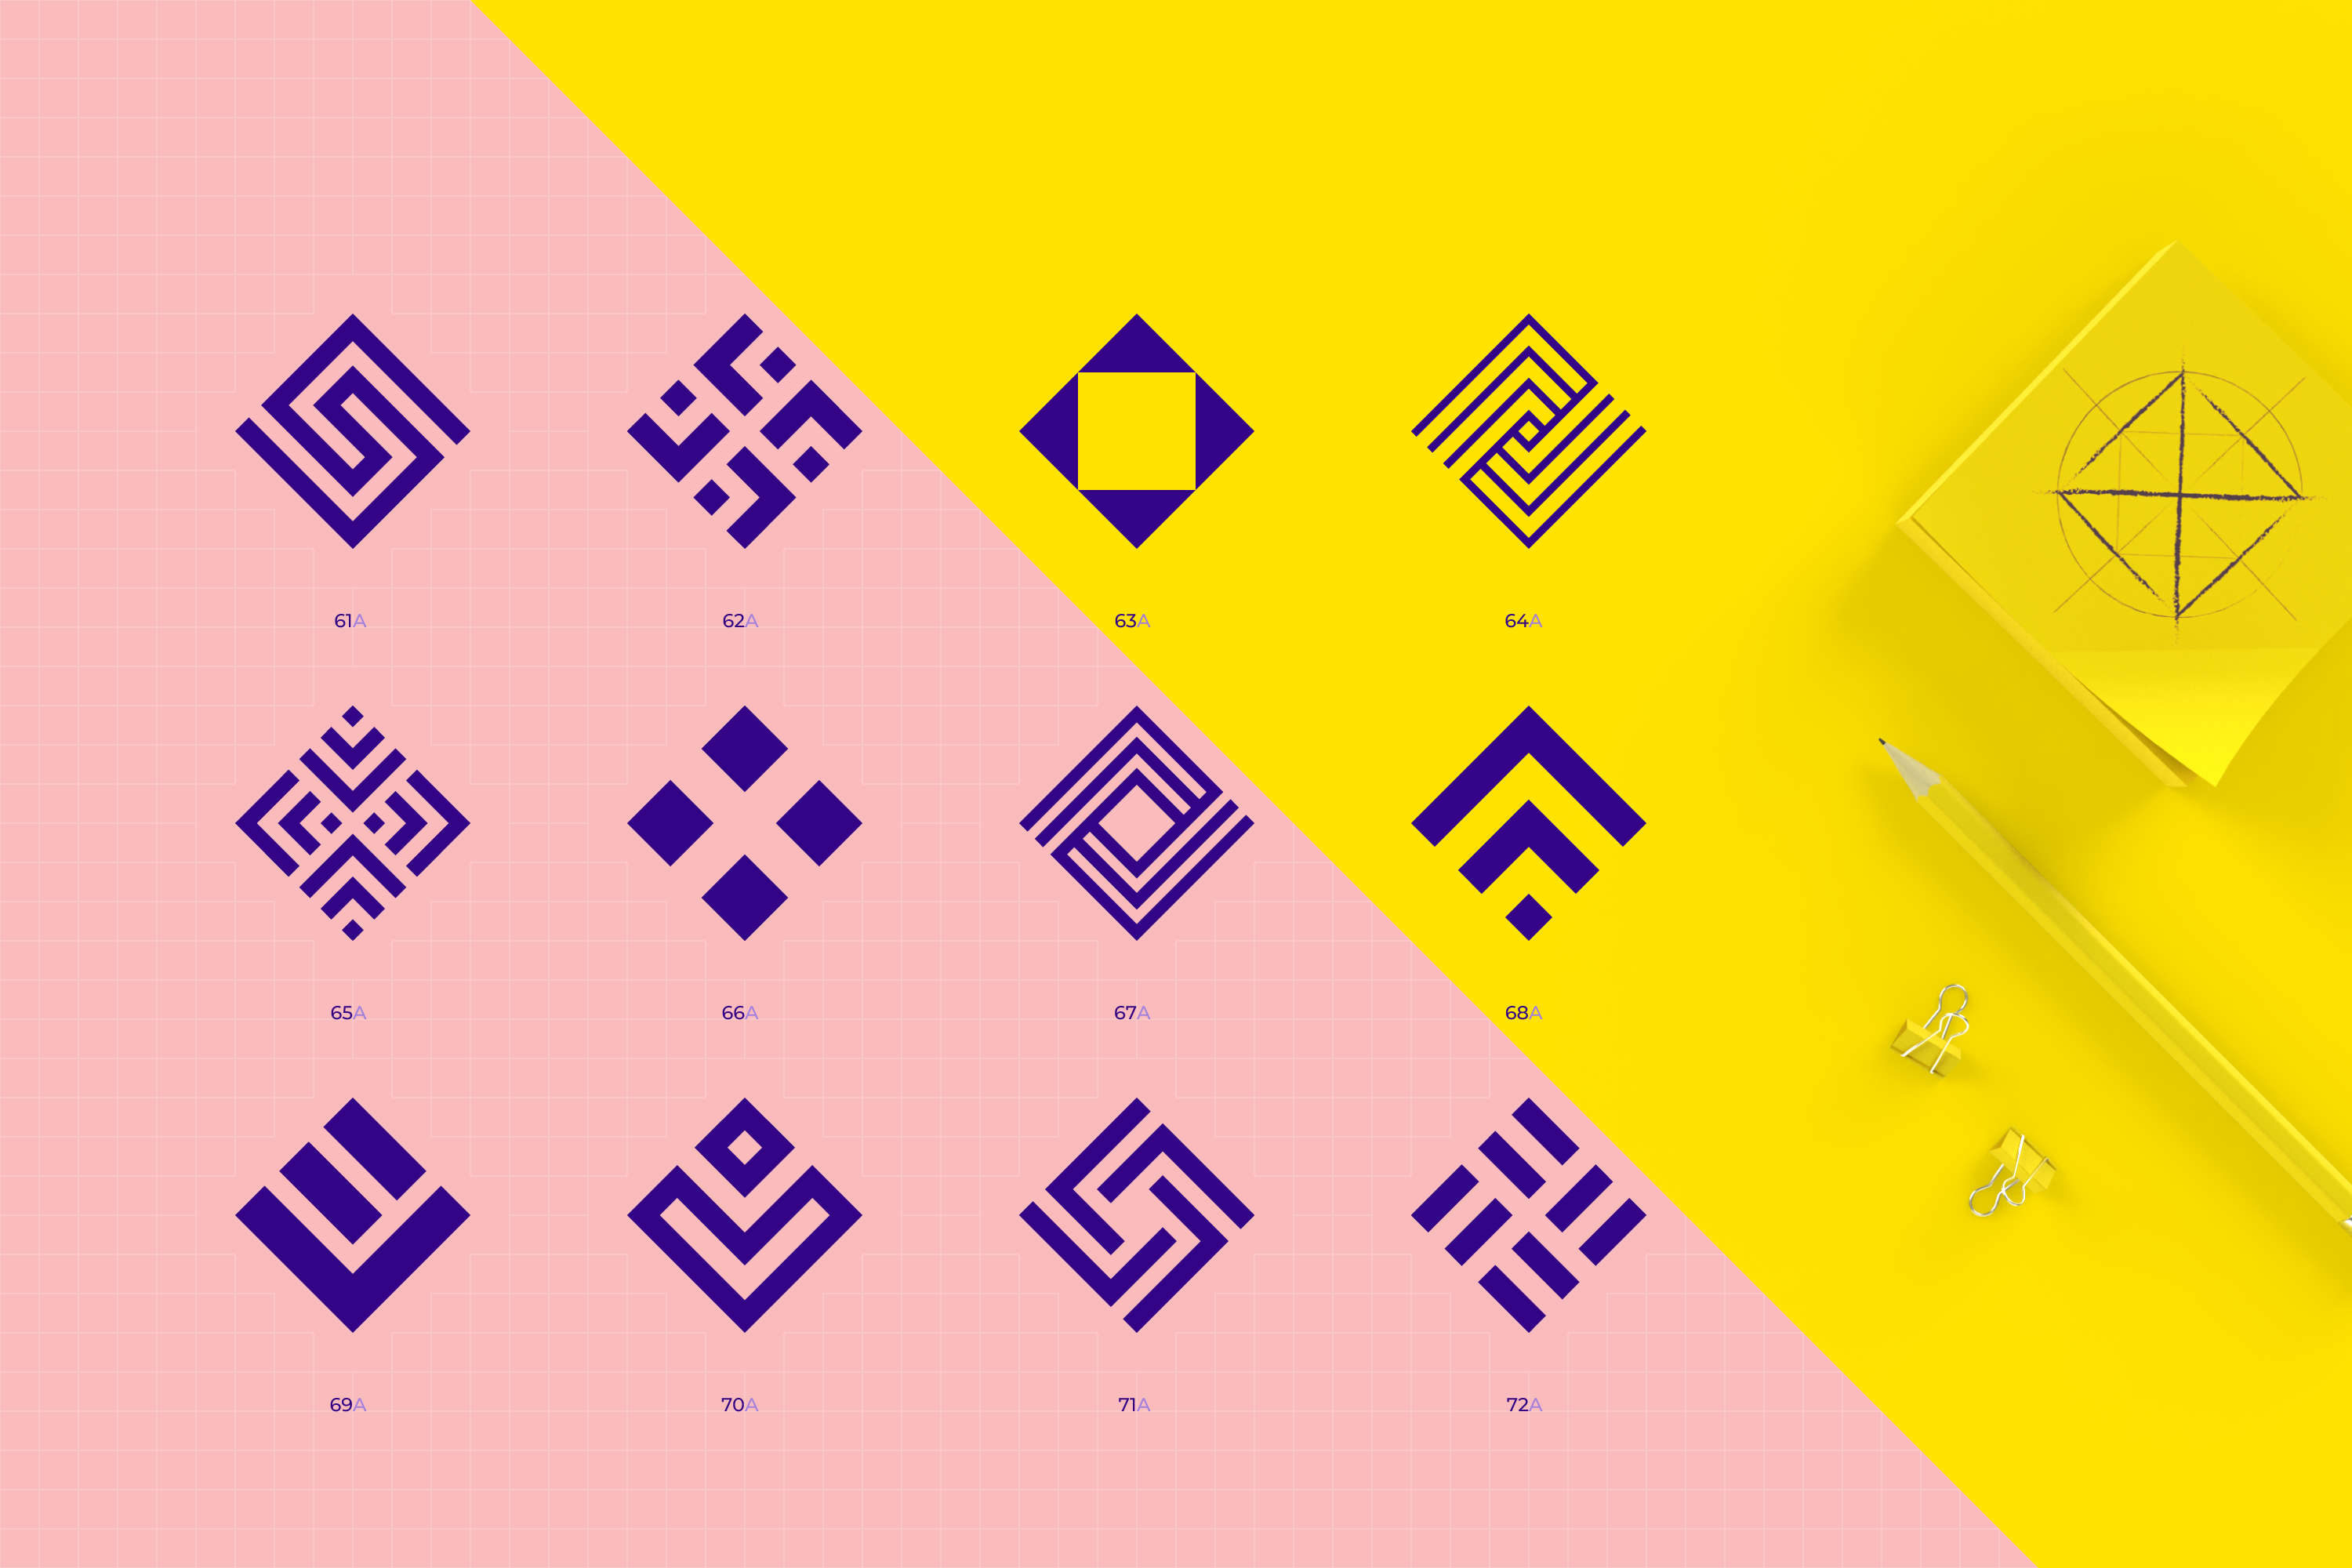 96 Geometric shapes & logo marks collection VOL.1 example image 15